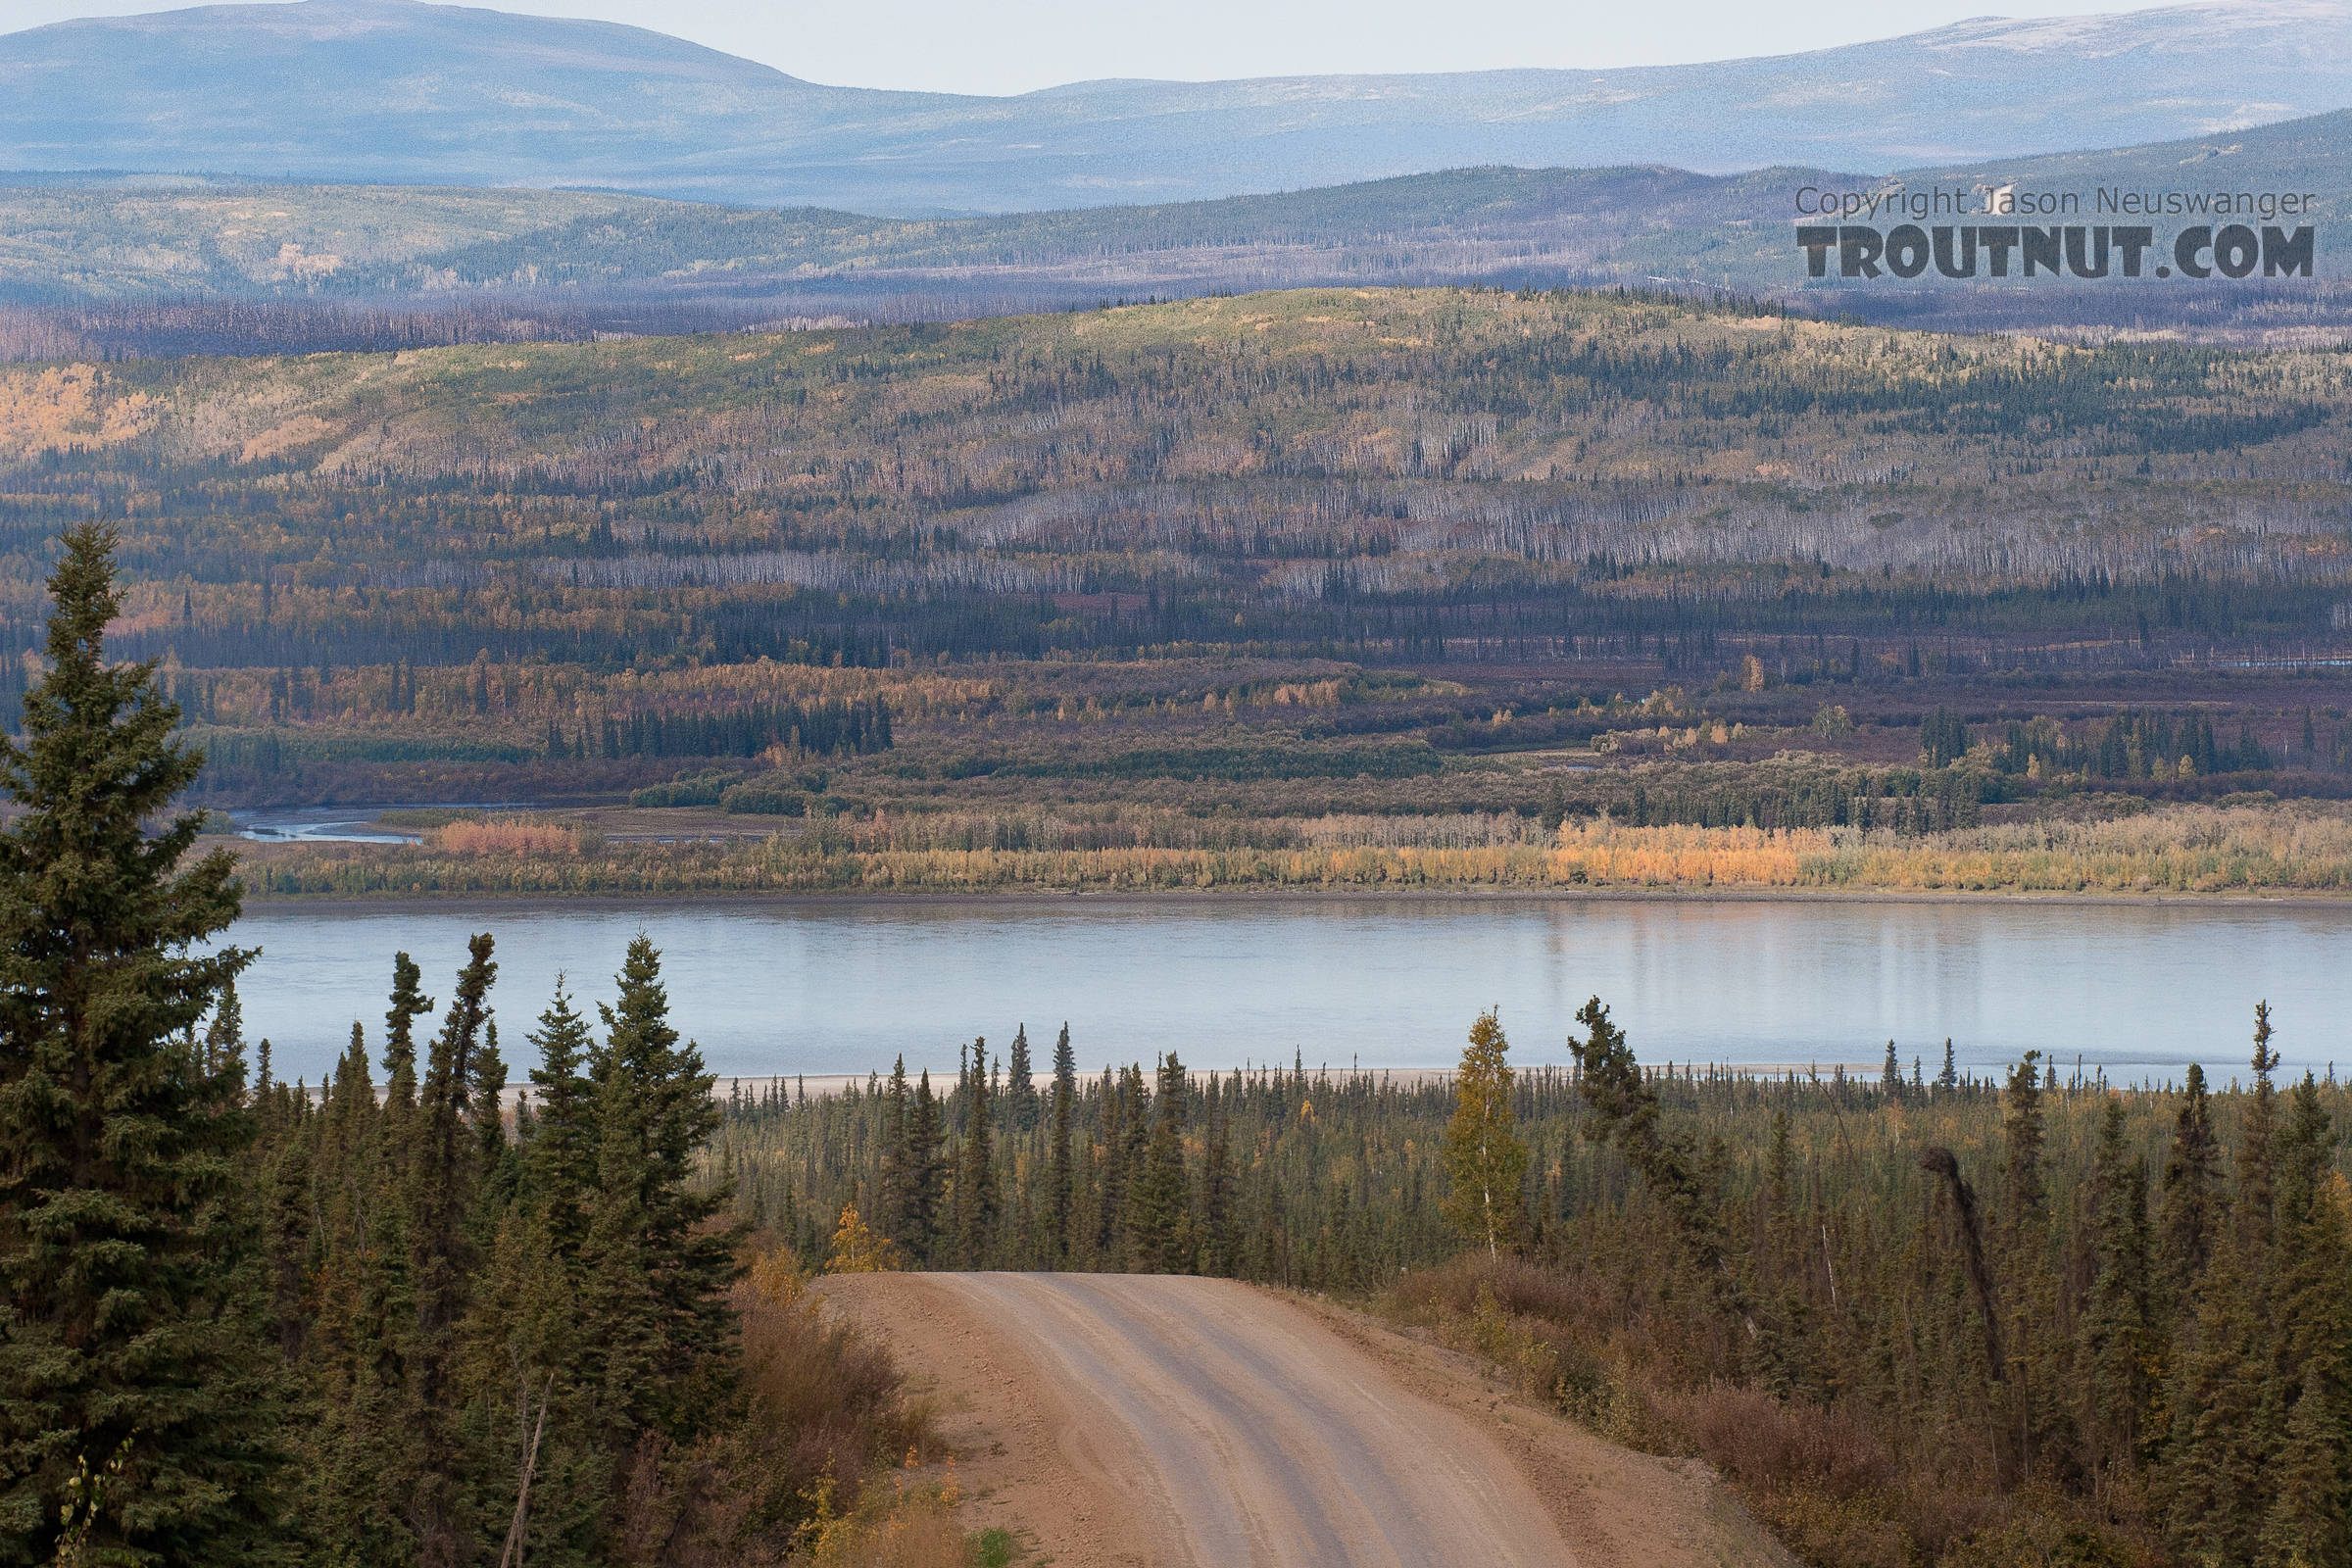 This is the first good view of the Yukon as you come up from the south. From the Yukon River in Alaska.